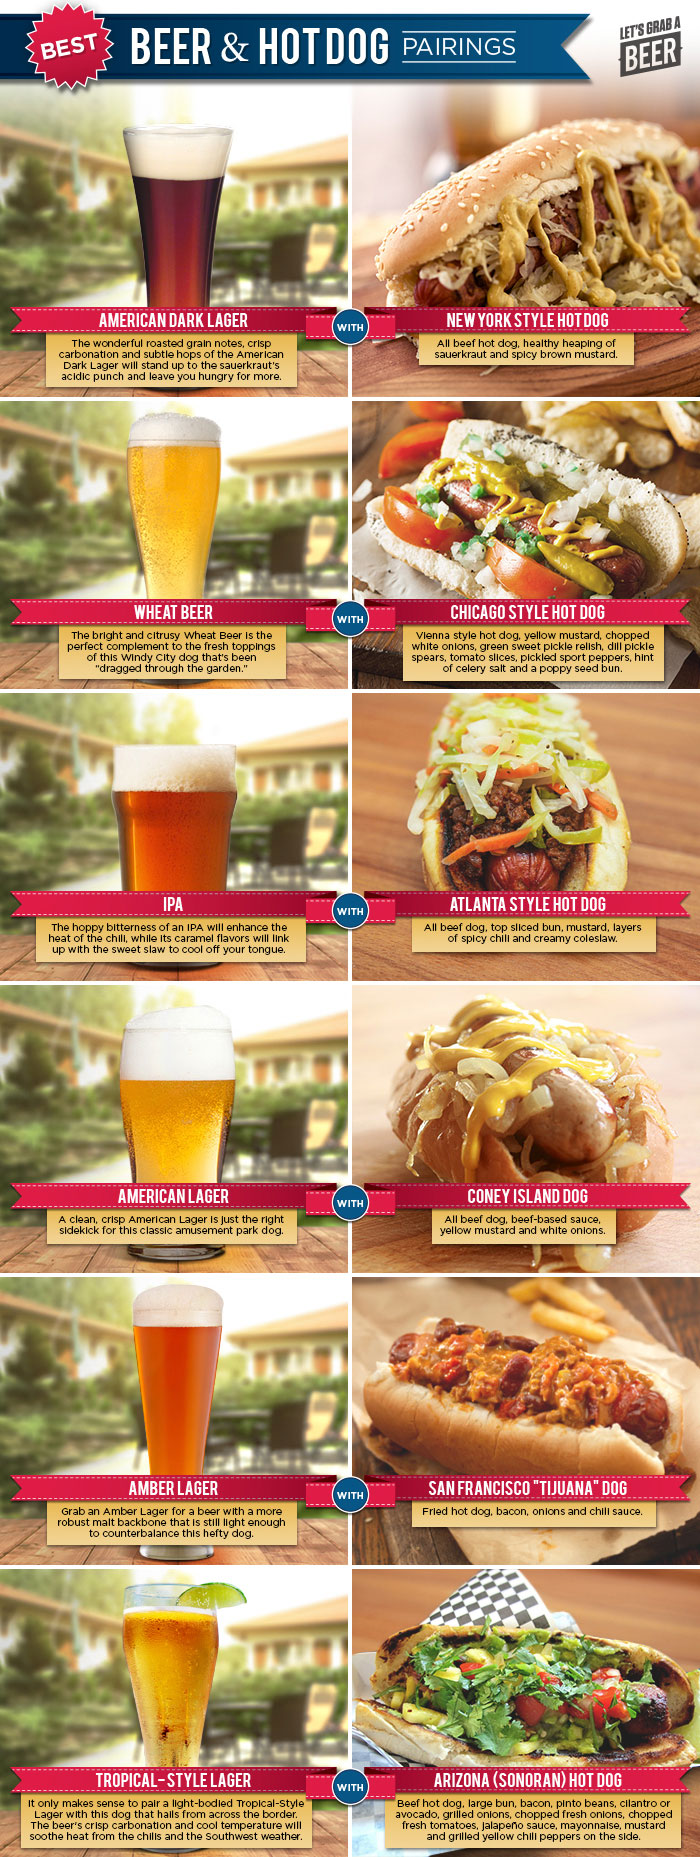 How To Pair Your Favorite Beer With The Right Hot Dog [Infographic]